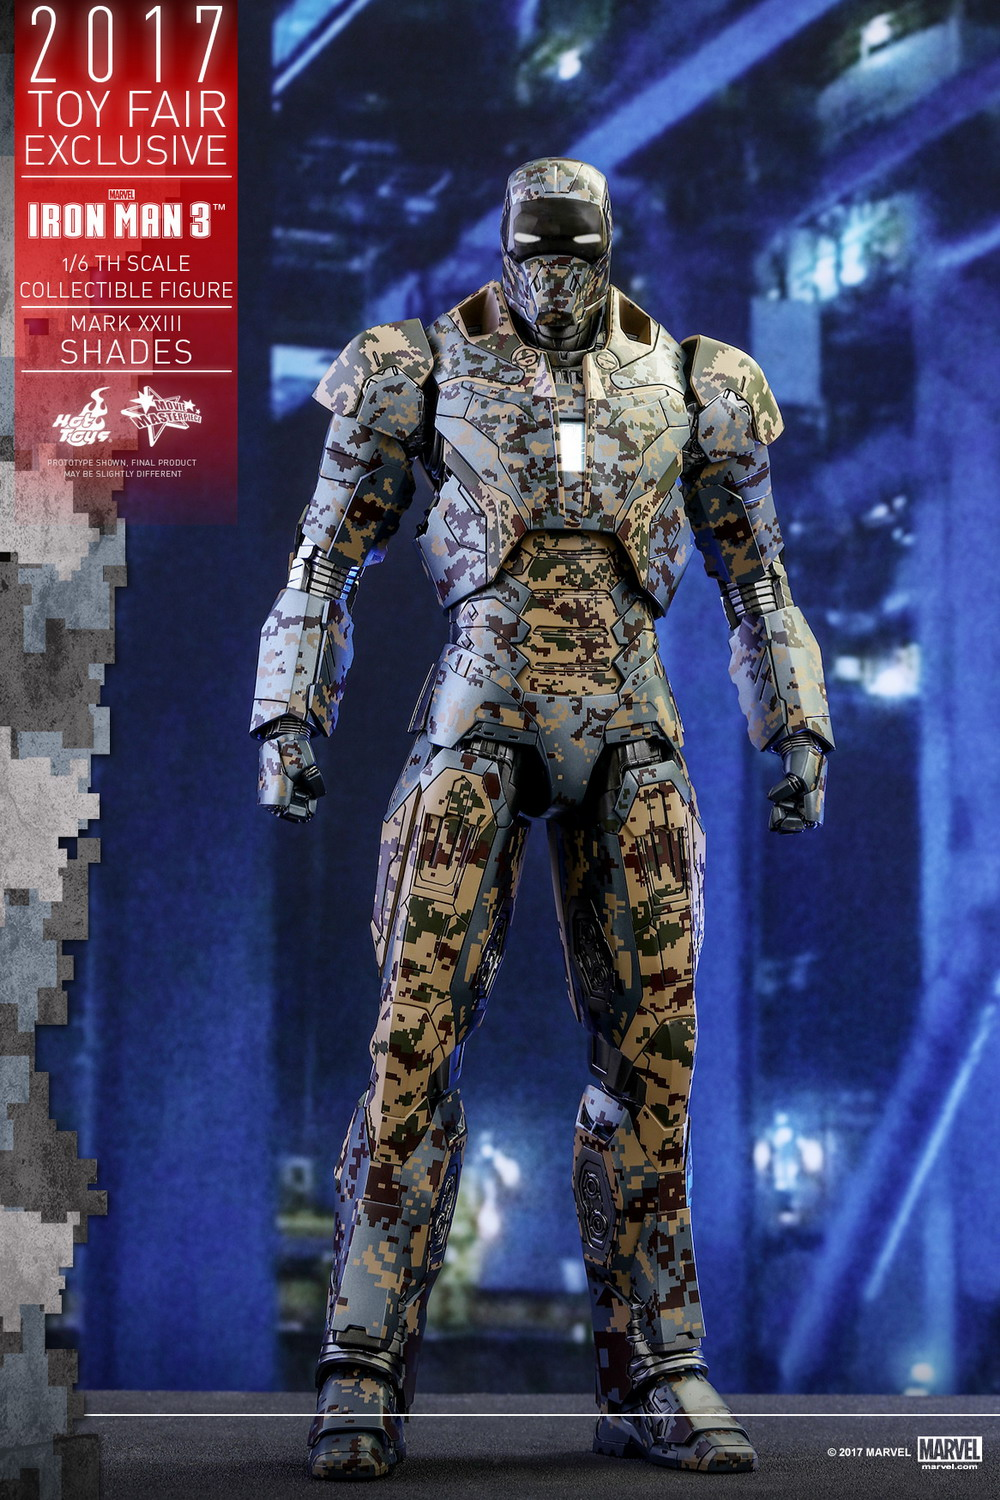 Hot-Toys---Iron-Man-3---Shades-Mark-XXIII-Collectible-Figure_PR1